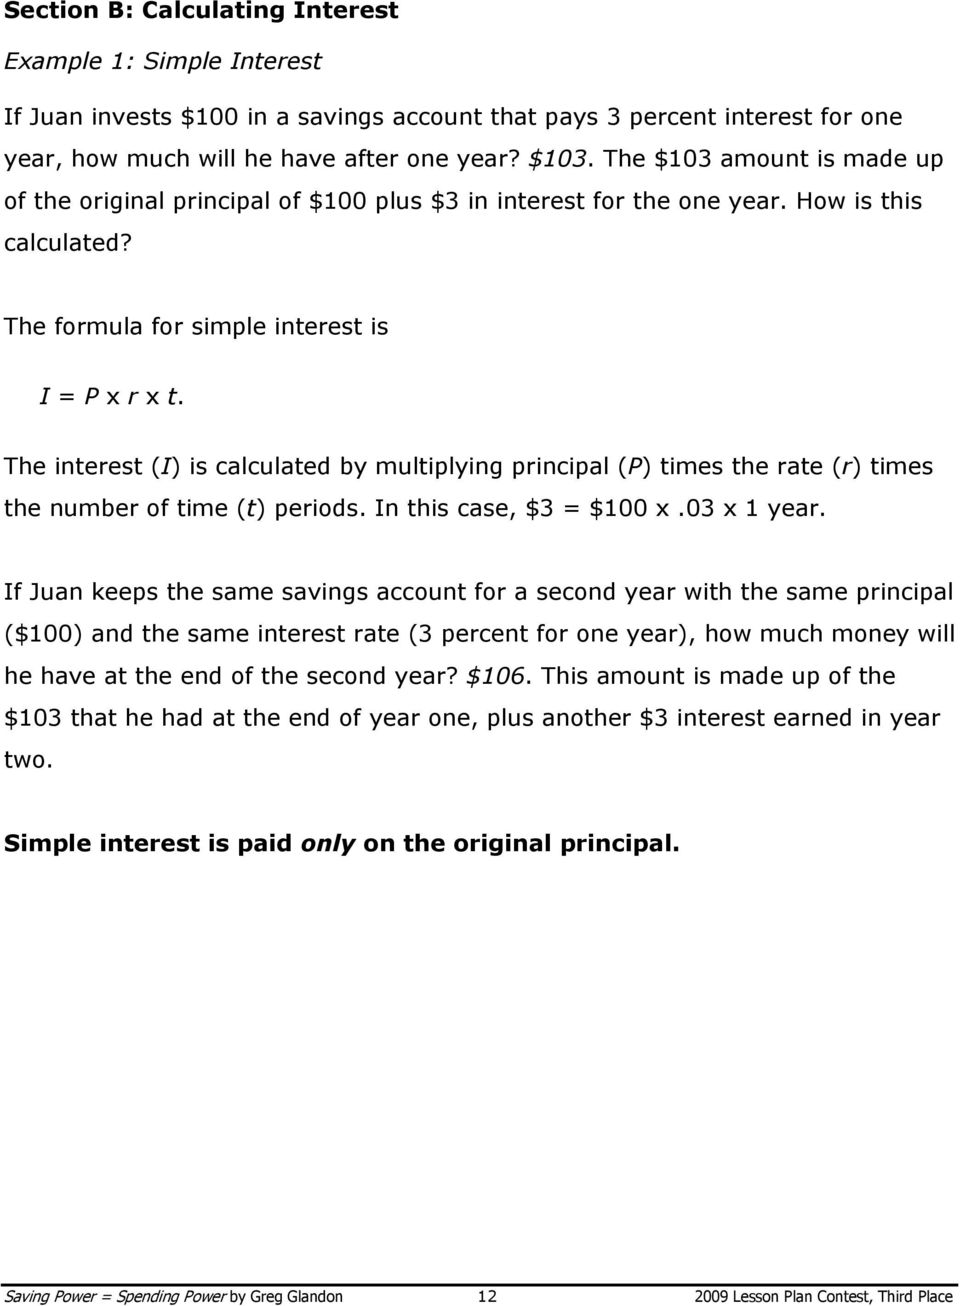 The interest (I) is calculated by multiplying principal (P) times the rate (r) times the number of time (t) periods. In this case, $3 = $100 x.03 x 1 year.